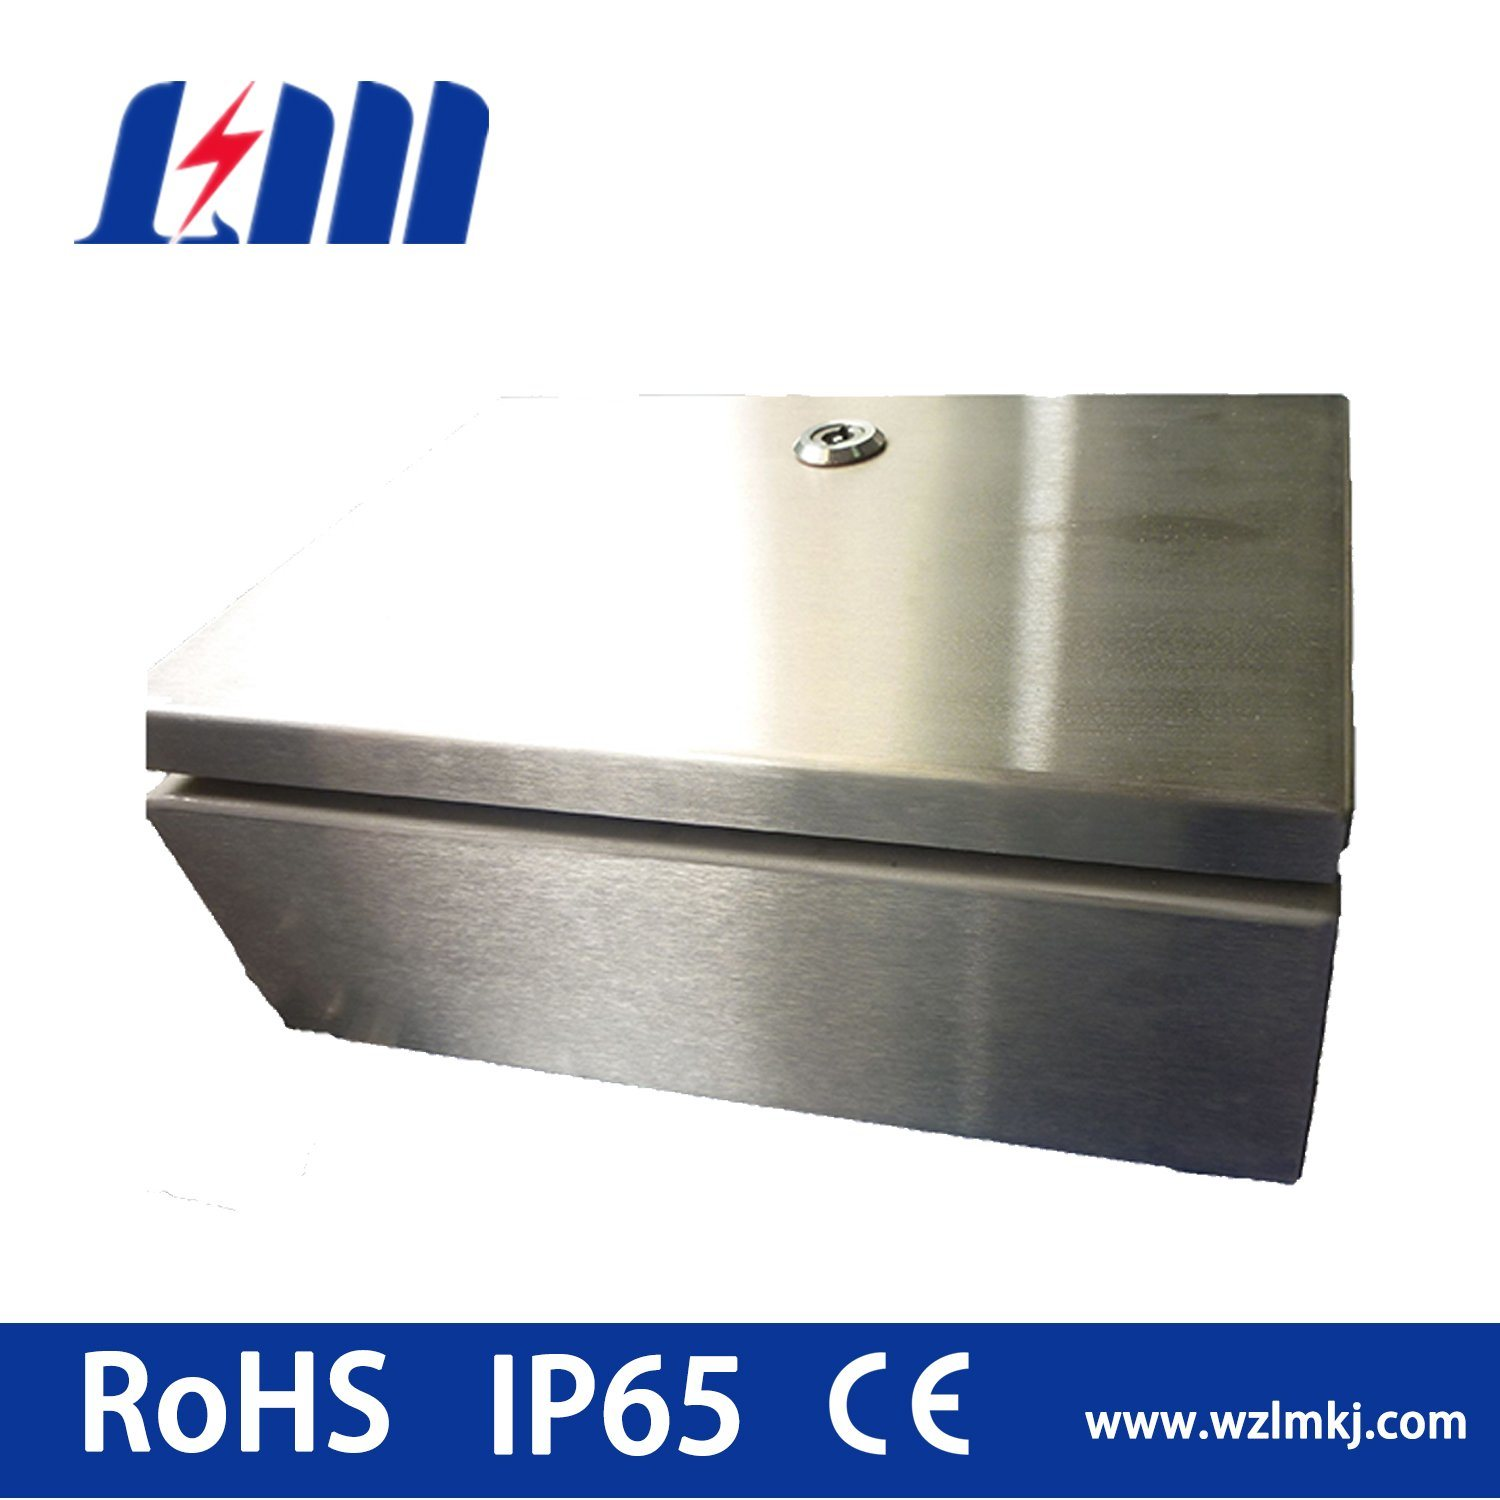 Stainless Steel Enclosure (SS)